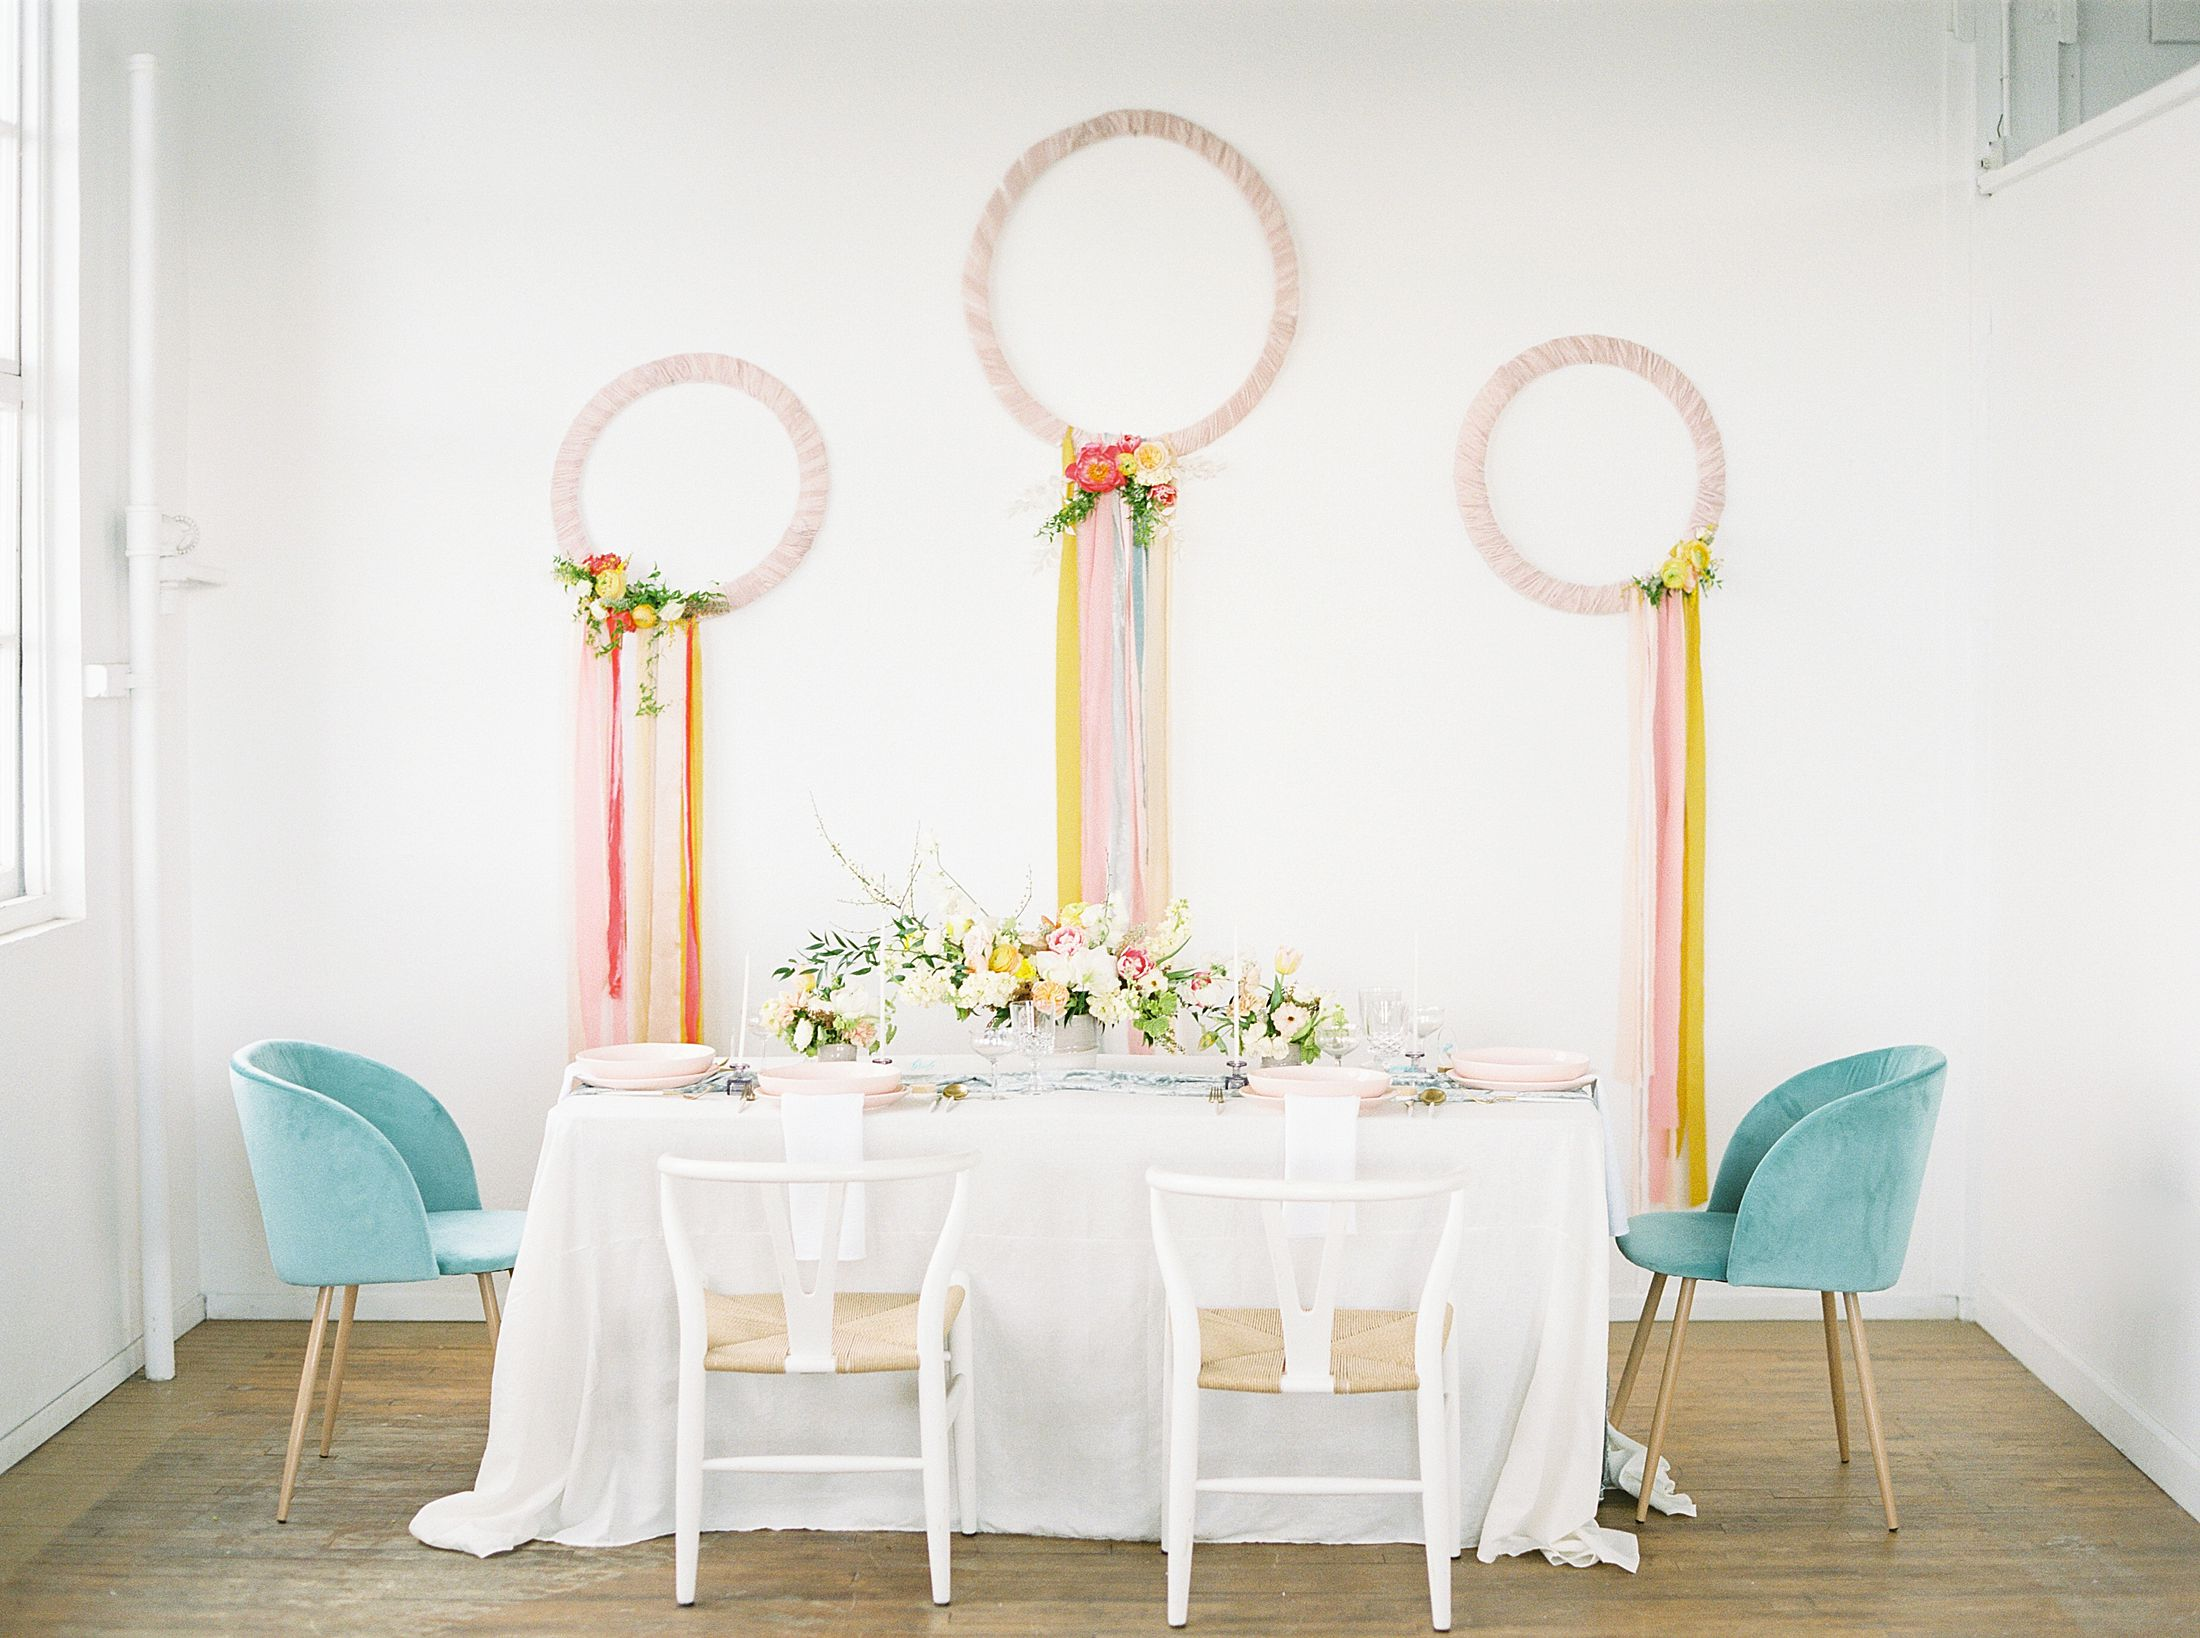 Bay Area Spring Wedding Inspiration - Ashley Baumgartner - Inspired By This - Party Crush Studio and Lens of Lenox Videography - Bay Area Wedding Photography_0028.jpg